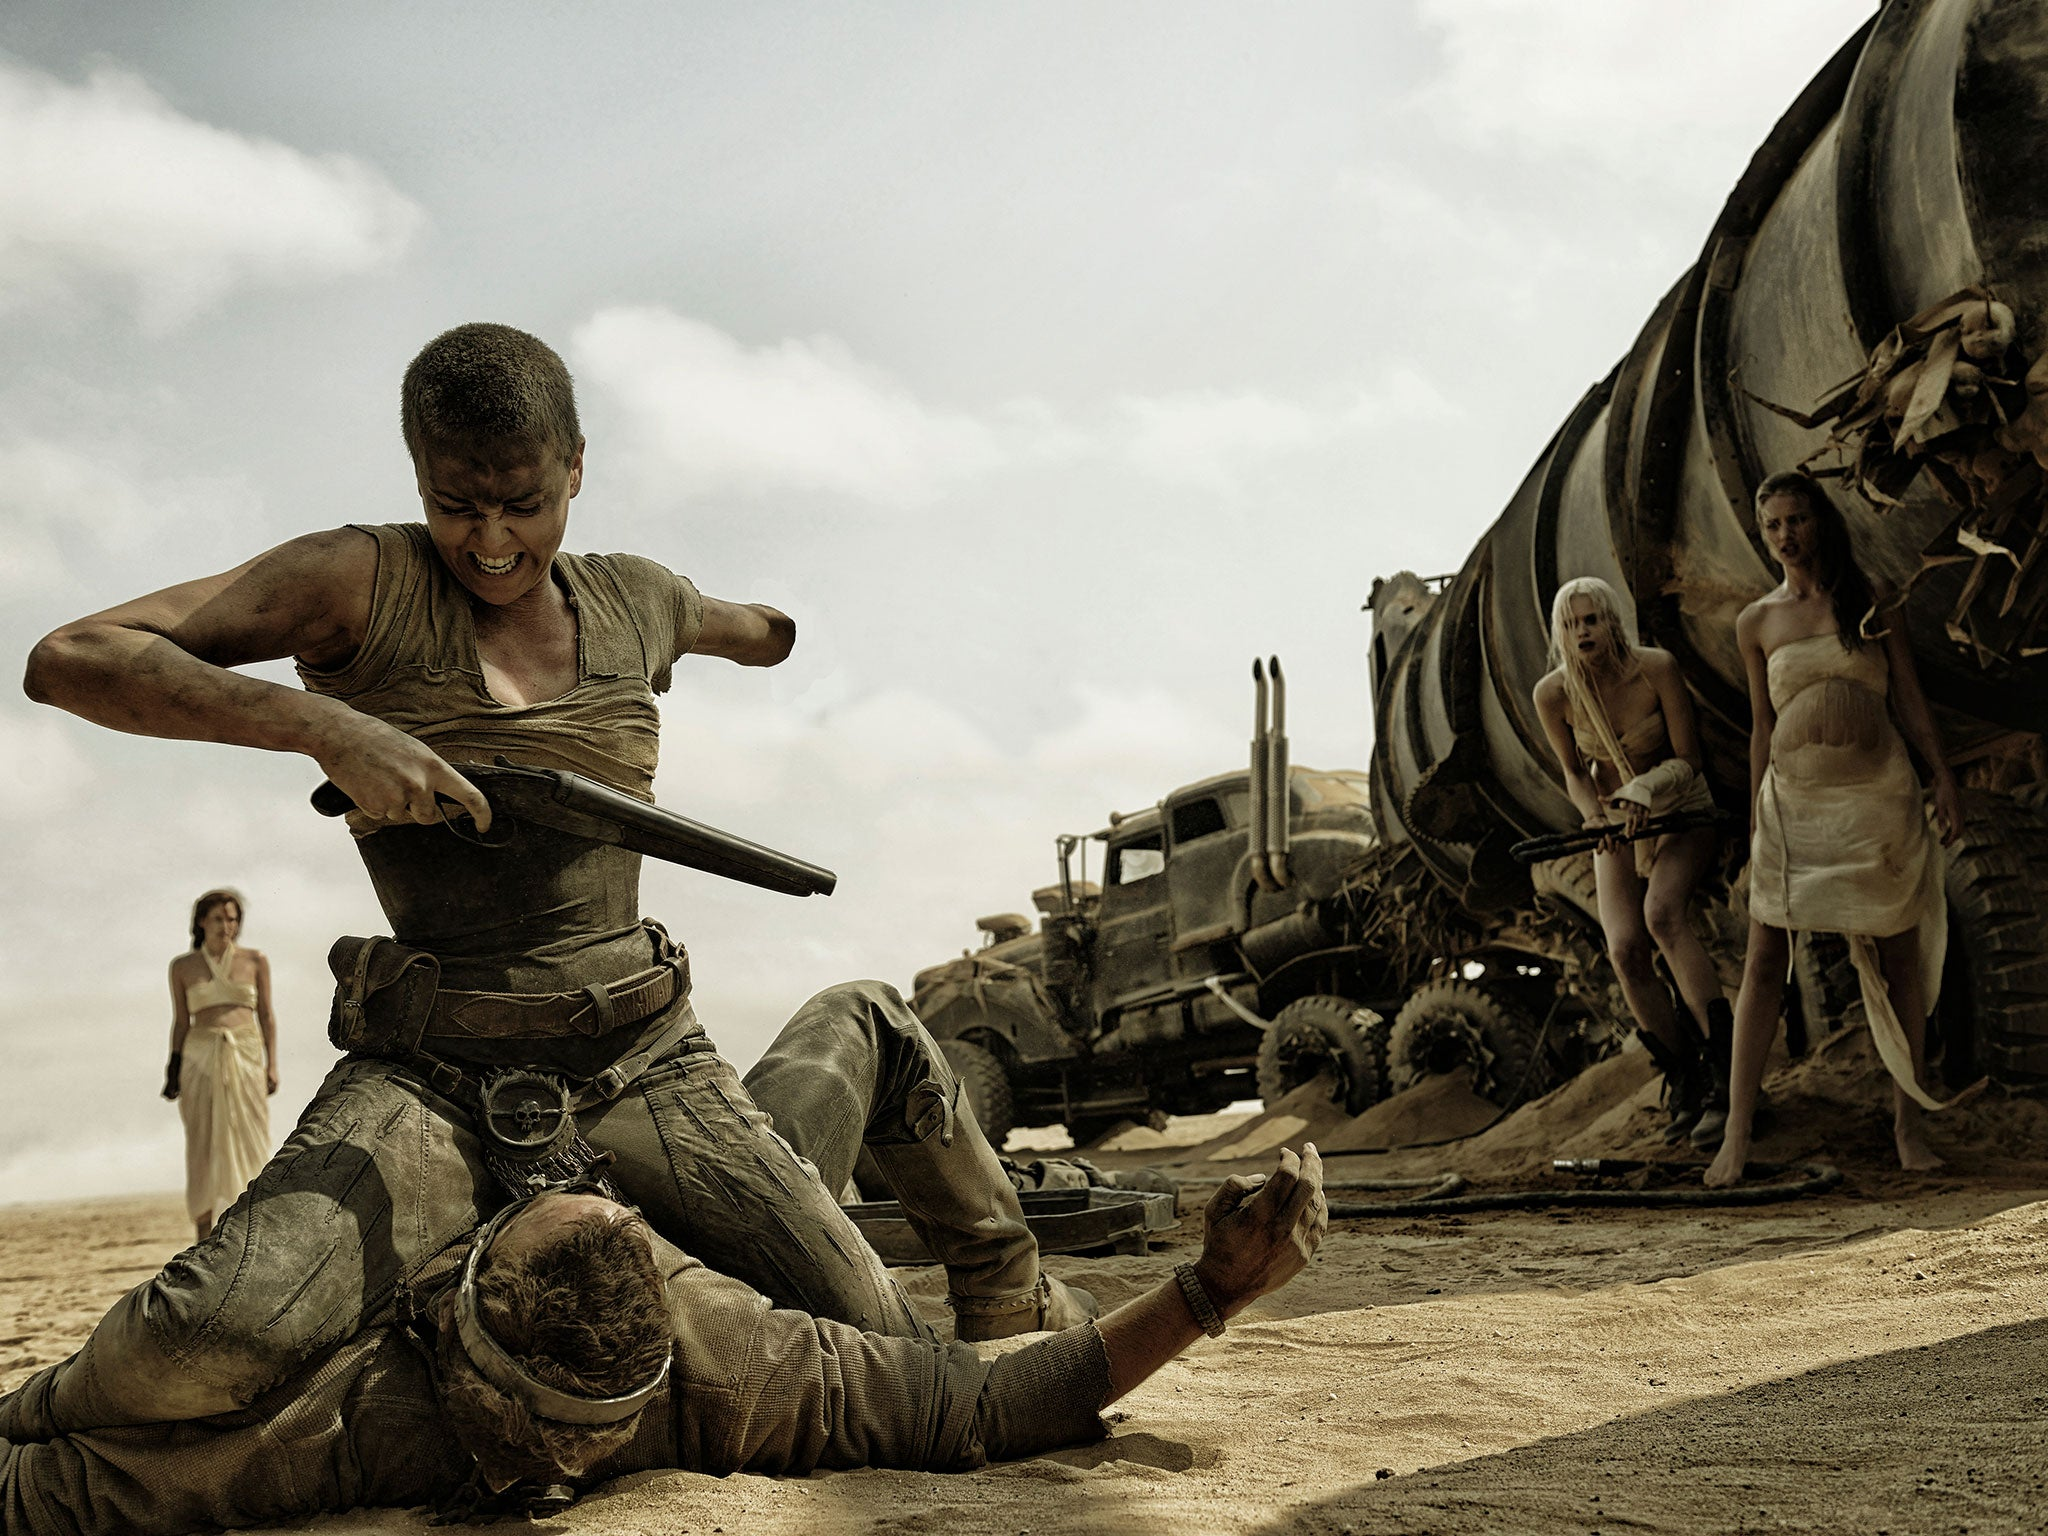 Mad Max Fury Road: When a film upsets misogynists it only makes me want to  see it more   The Independent   The Independent